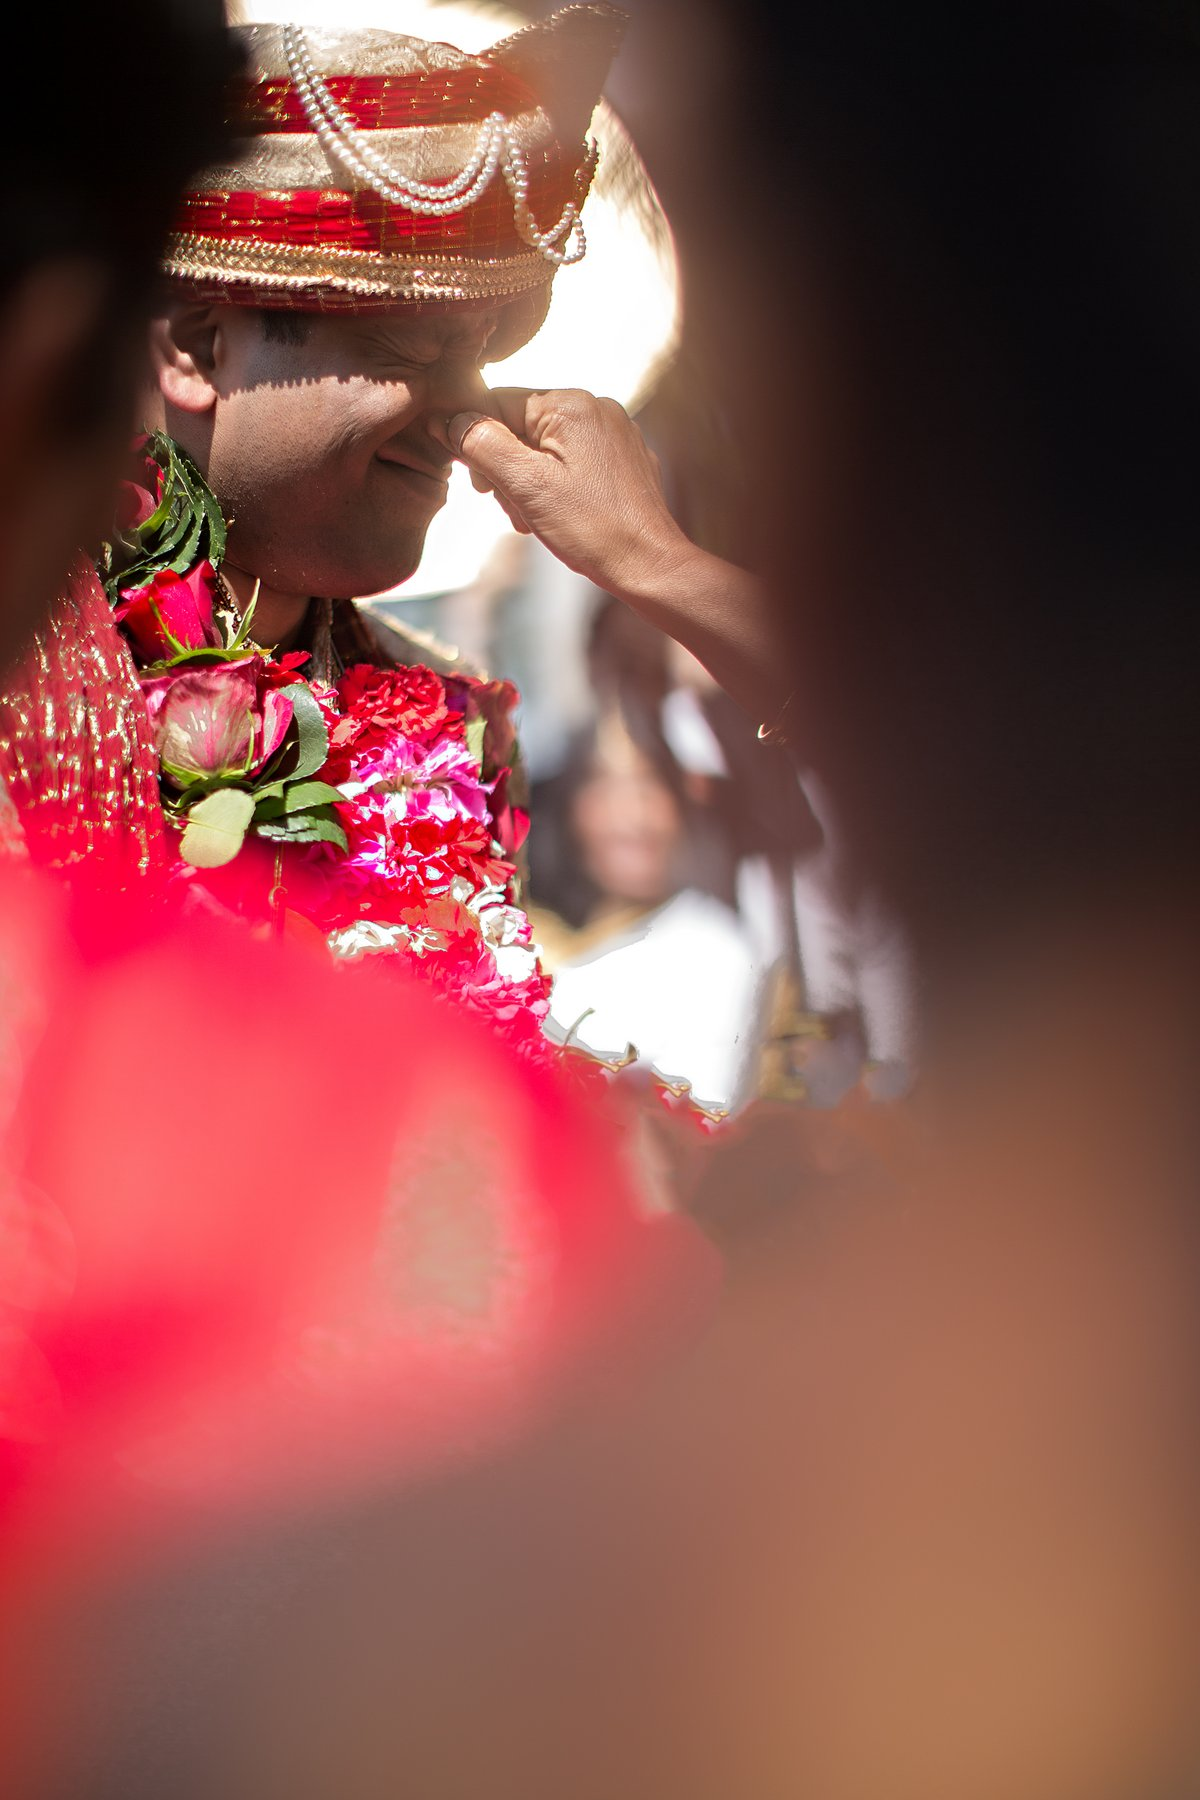 S1-1-1379 Sheetal + Guru | Hindu Indian Wedding Photos | South Florida